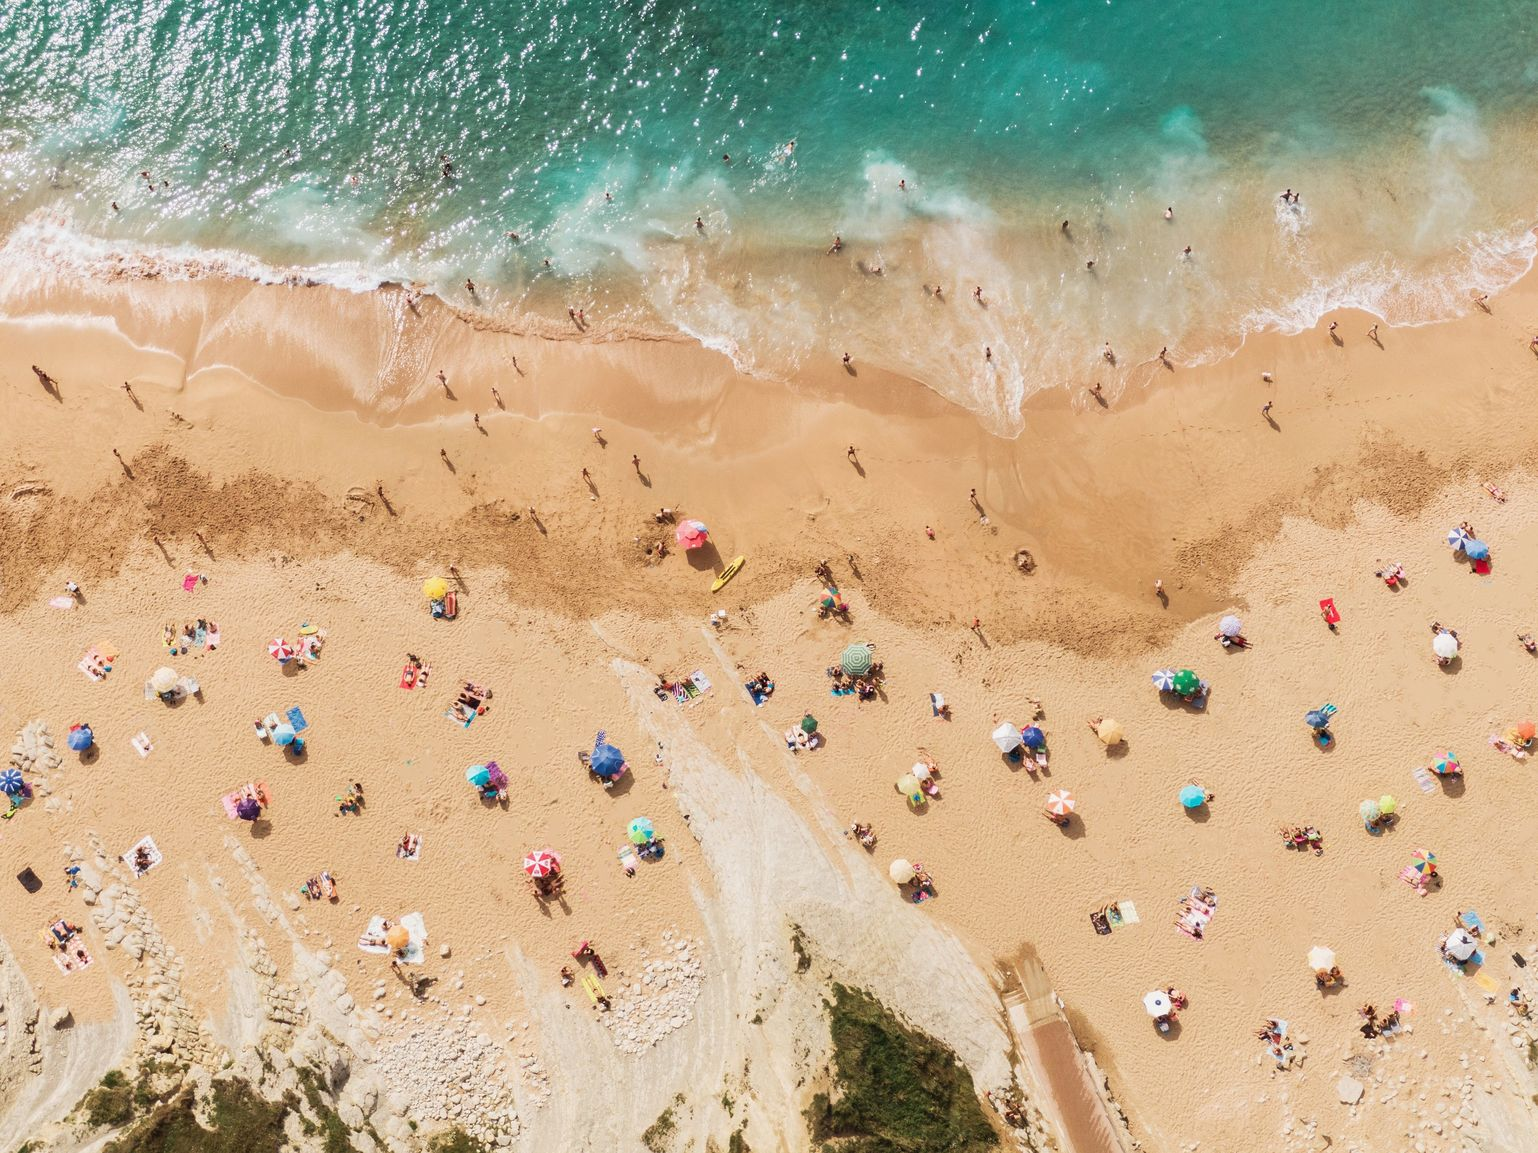 An expert's guide to doing your bit this summer